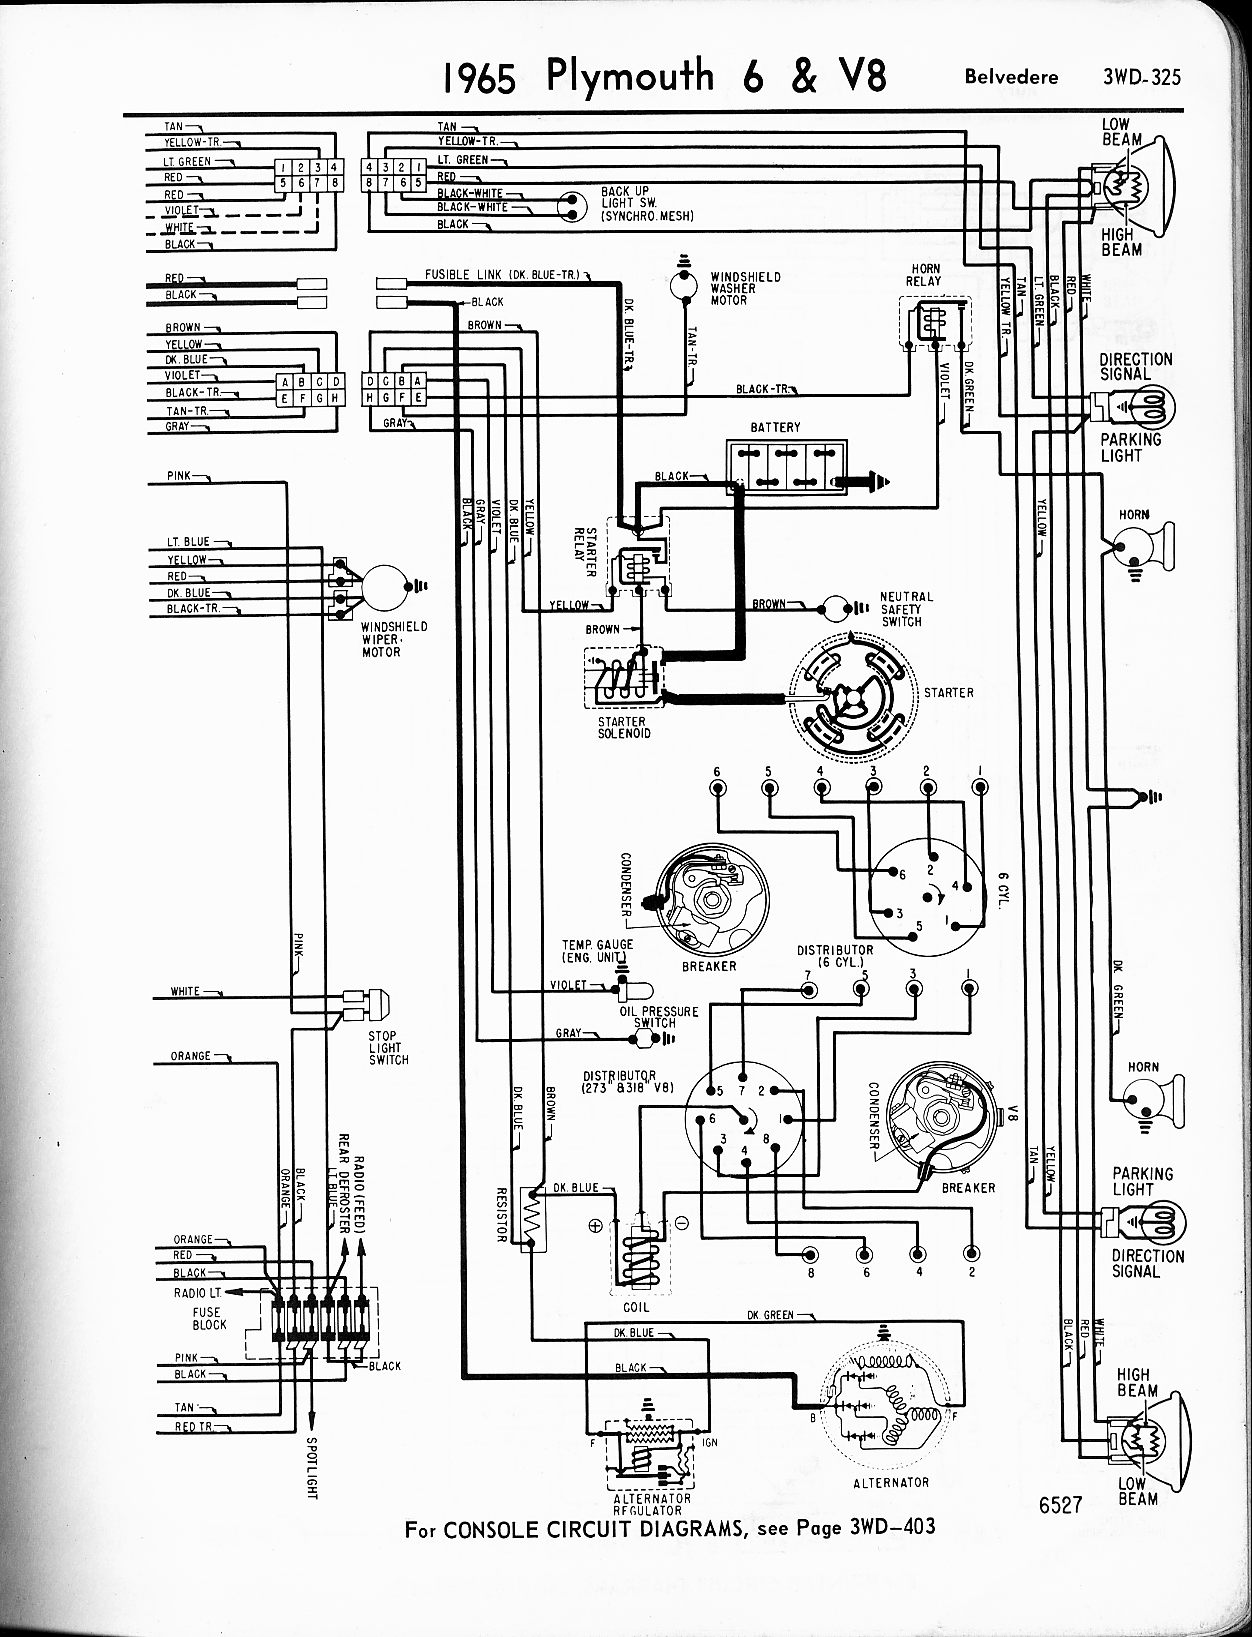 MWire5765 325 1956 1965 plymouth wiring the old car manual project 1969 plymouth satellite wiring diagram at n-0.co